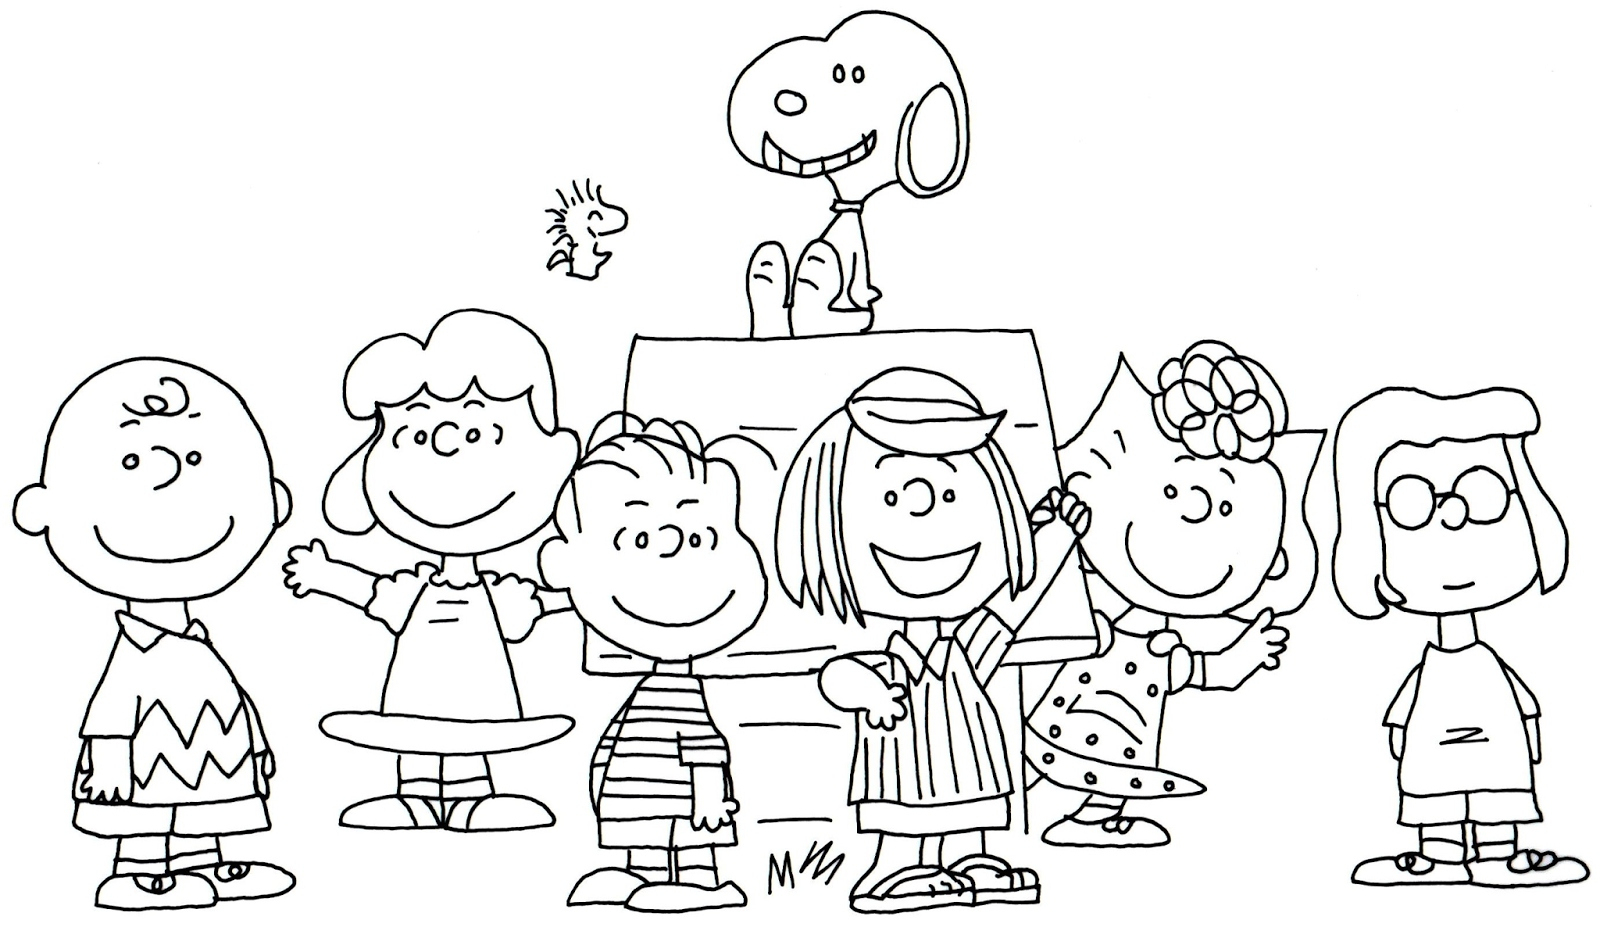 Snoopy And Woodstock Coloring Pages Snoopy Woodstock Coloring Pages Print Coloring